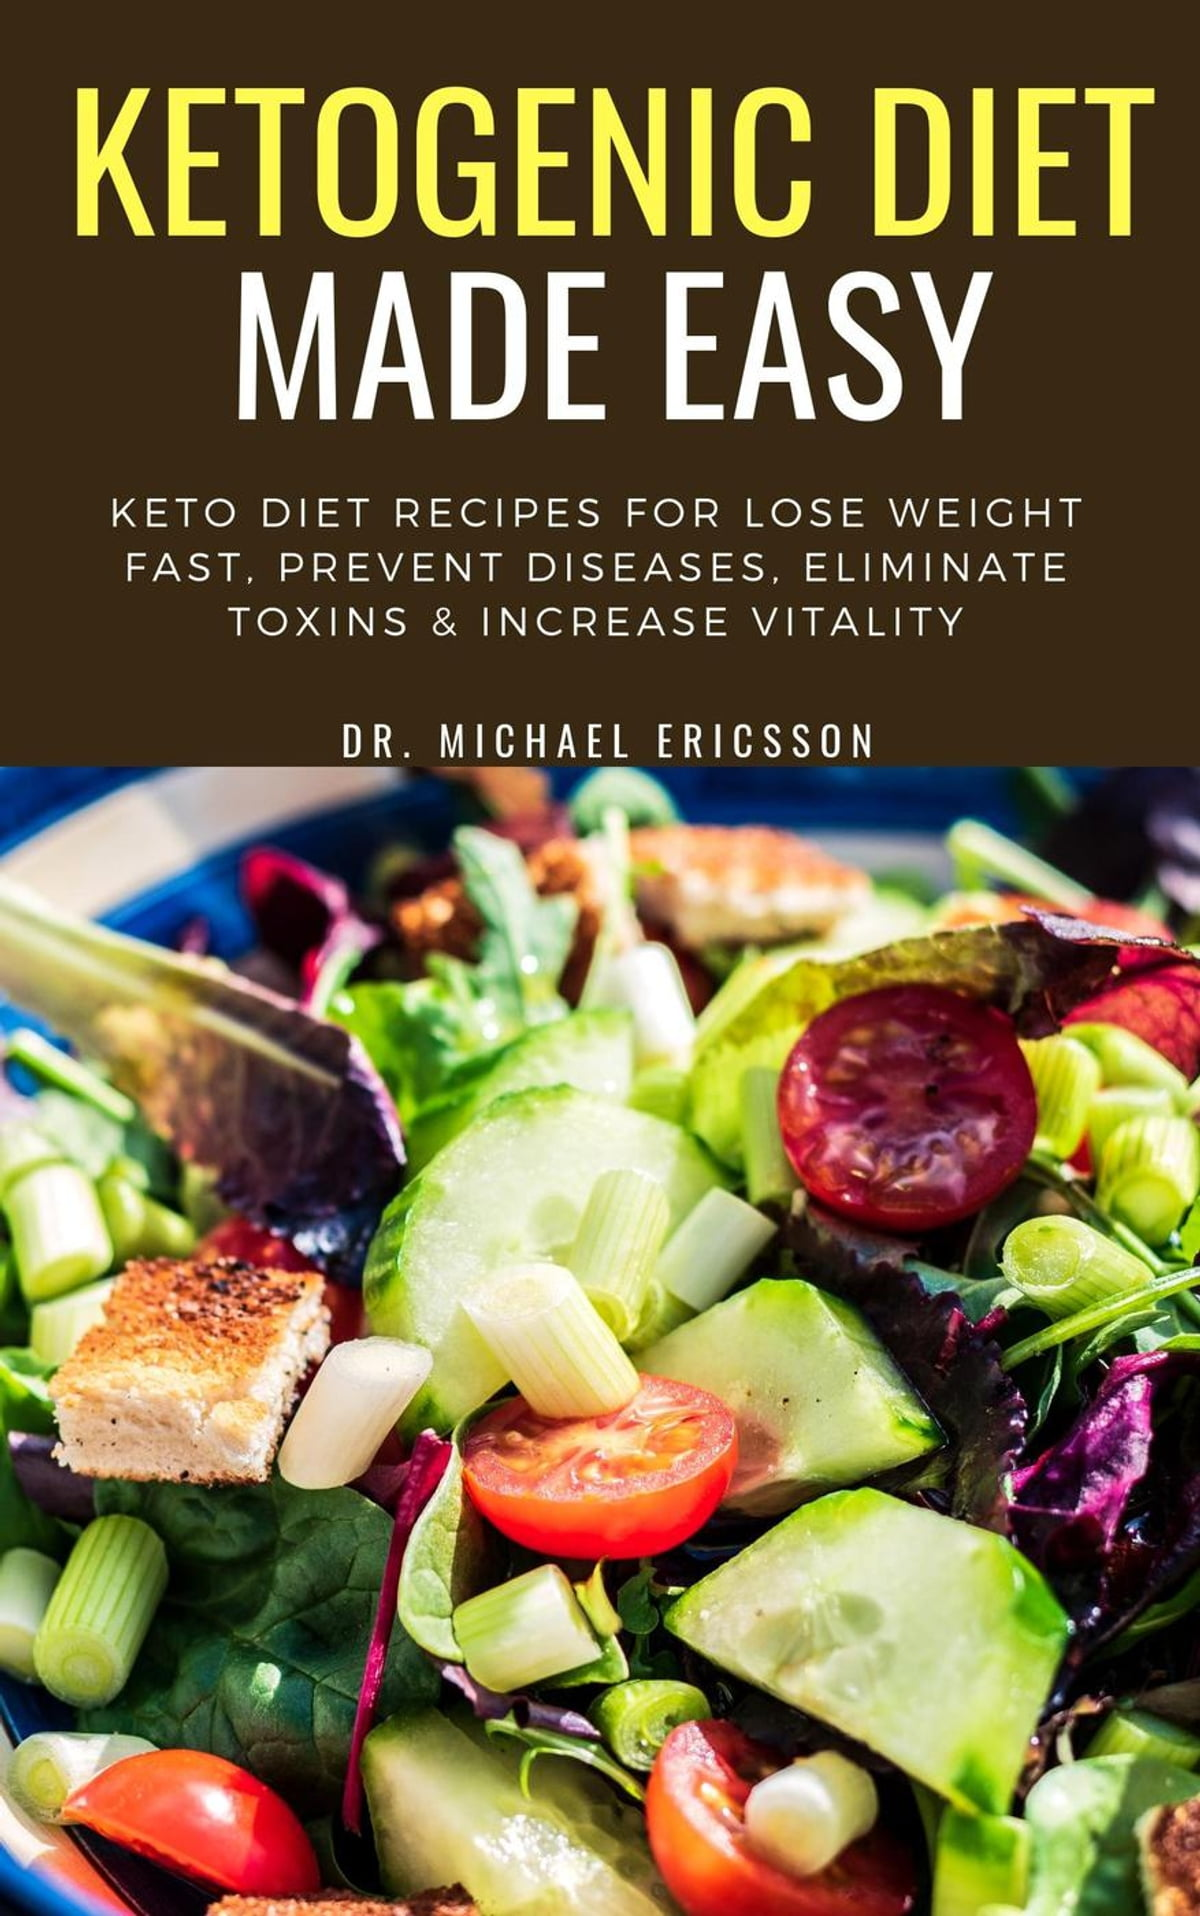 good+diet+recipes+to+lose+weight+fast